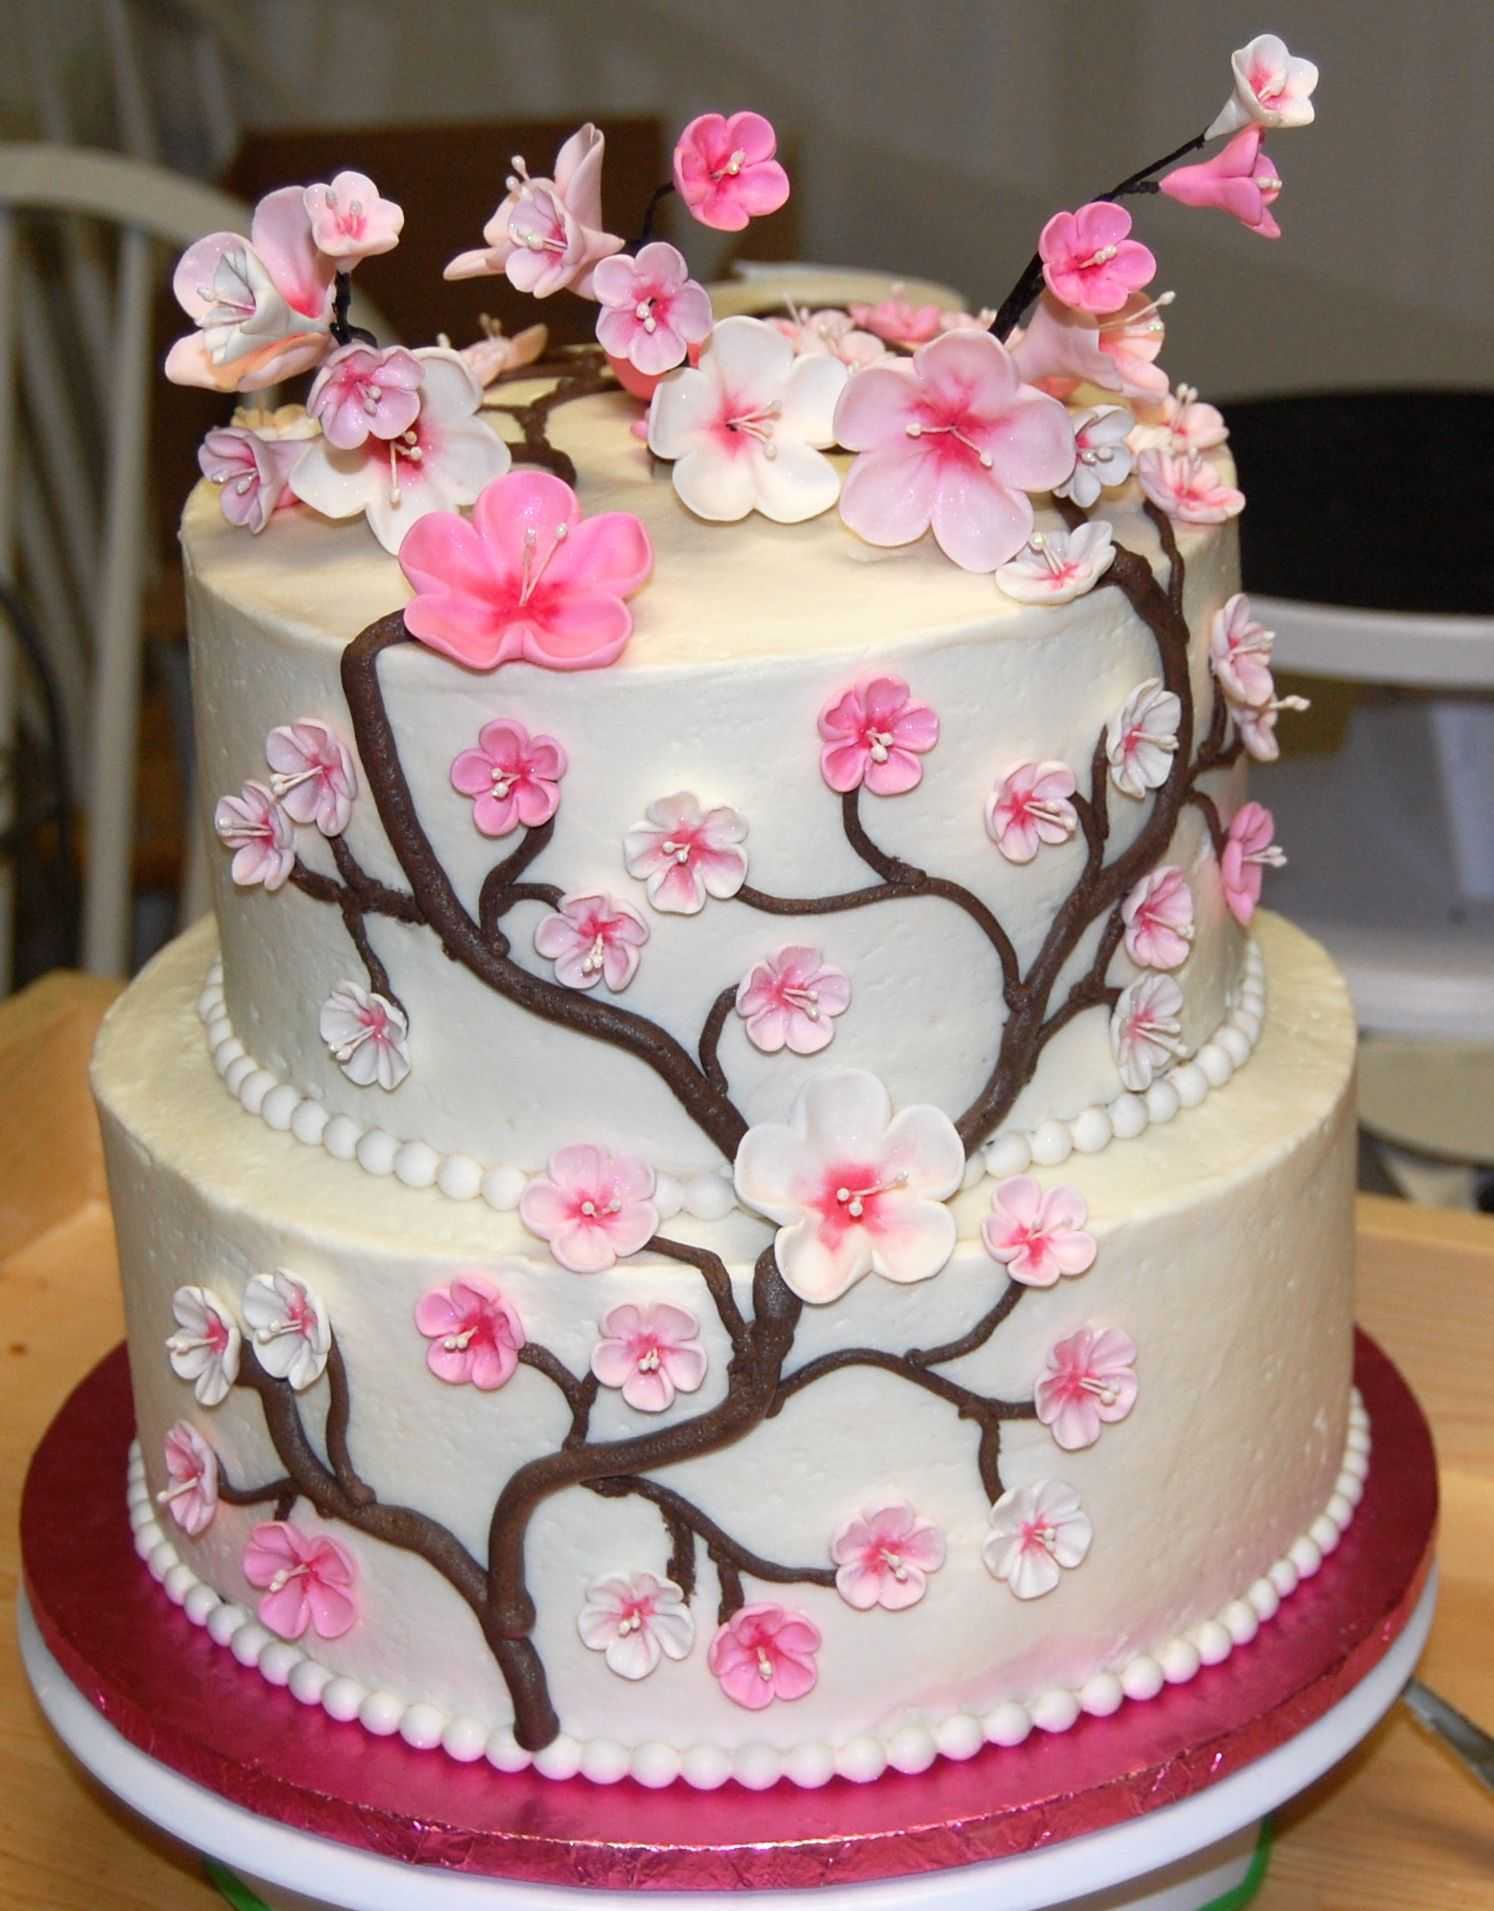 Japanese Cherry Blossom Cake Chocolate cake with cookies